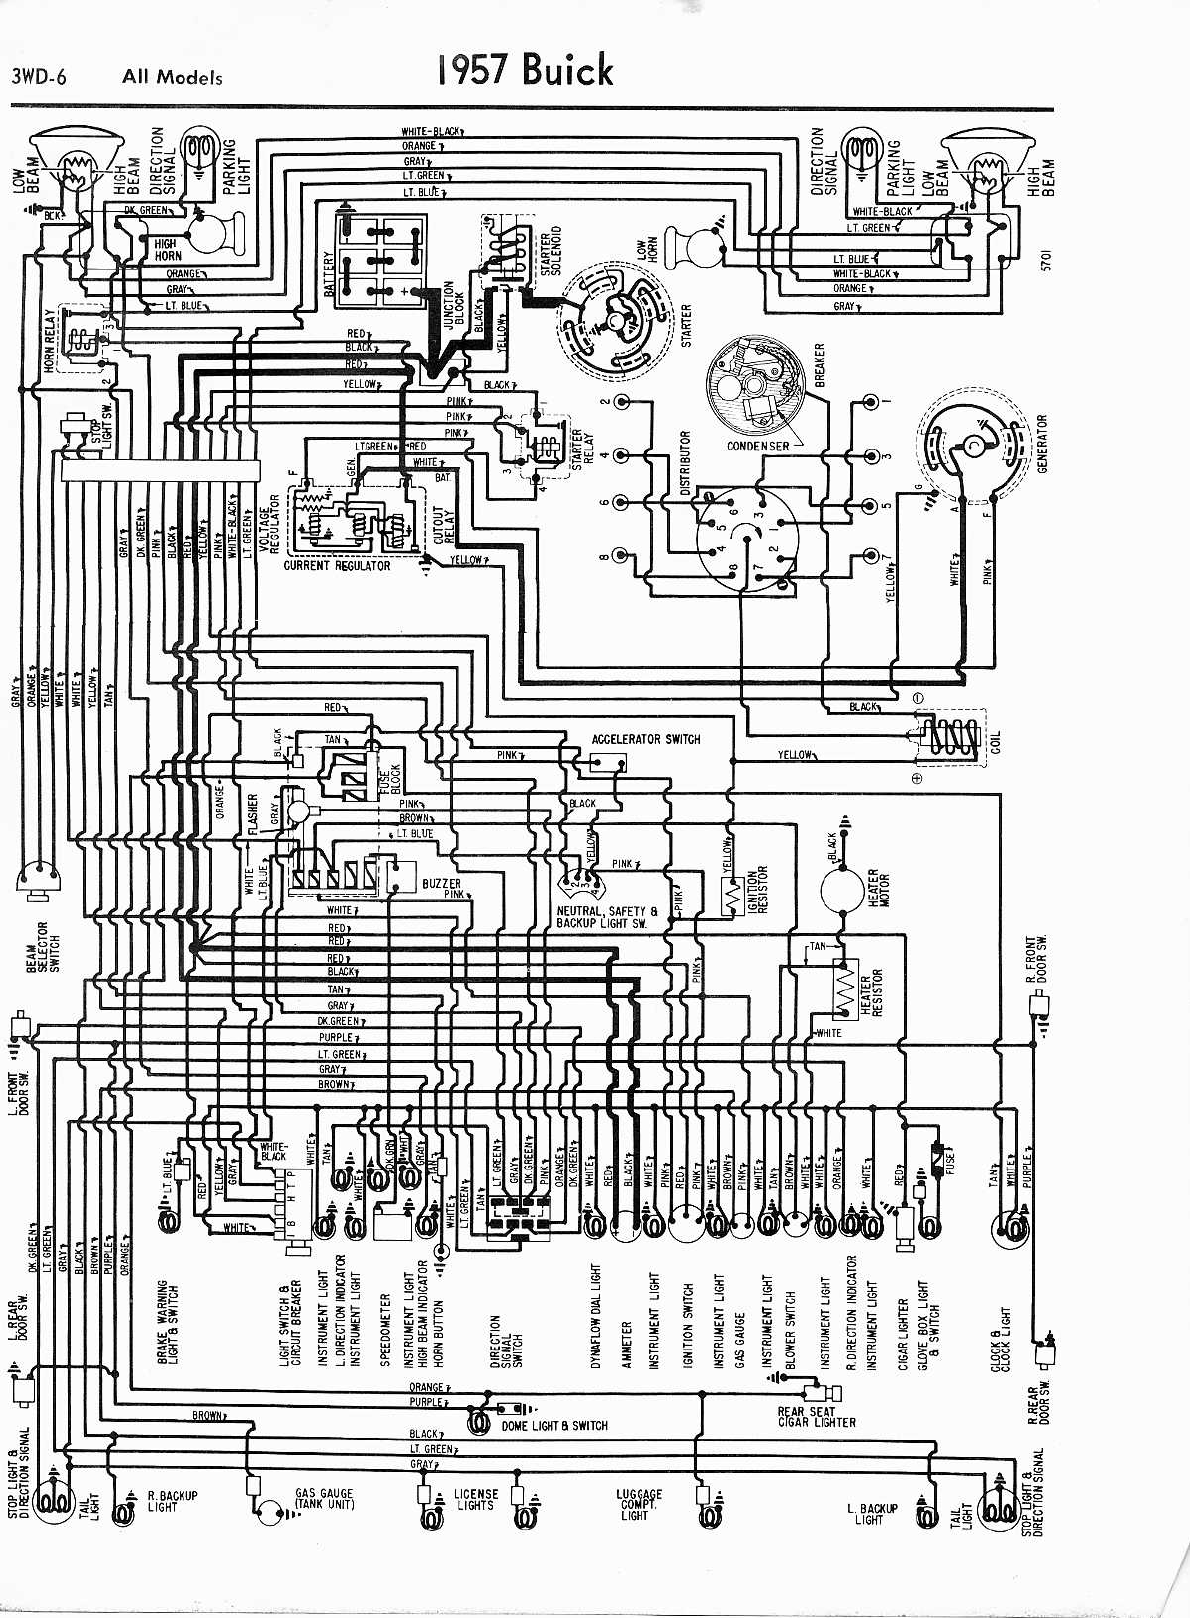 1960 Buick Wiring Diagram Schemes 1952 Chevy Riviera 1957 Misc Documents Diagrams Pdf Rh Manuals Co 2004 Lesabre